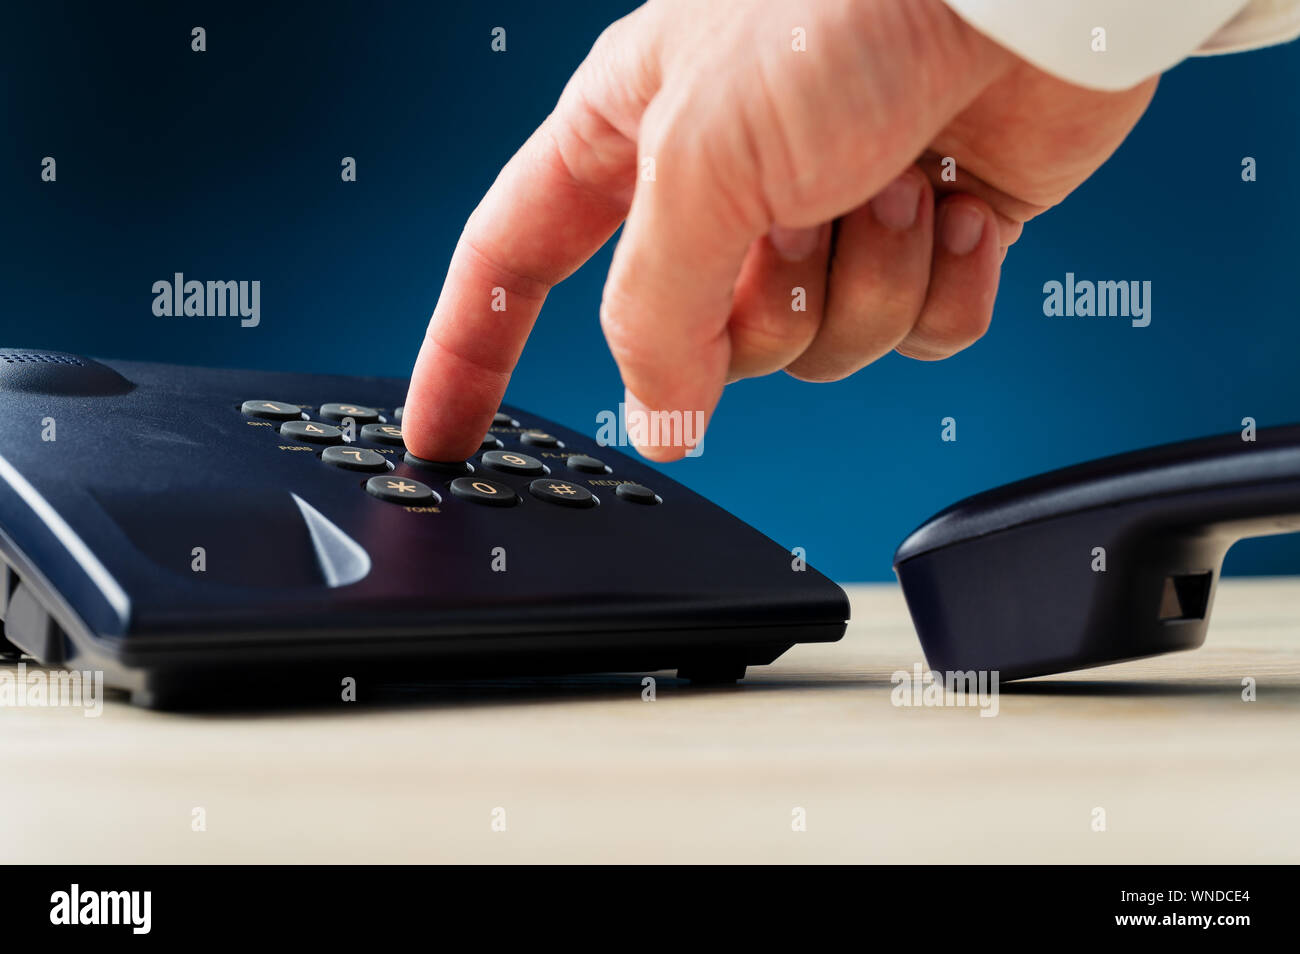 Closeup of male finger pressing a button on landline telephone keypad on a desk. Over dark blue background. Stock Photo